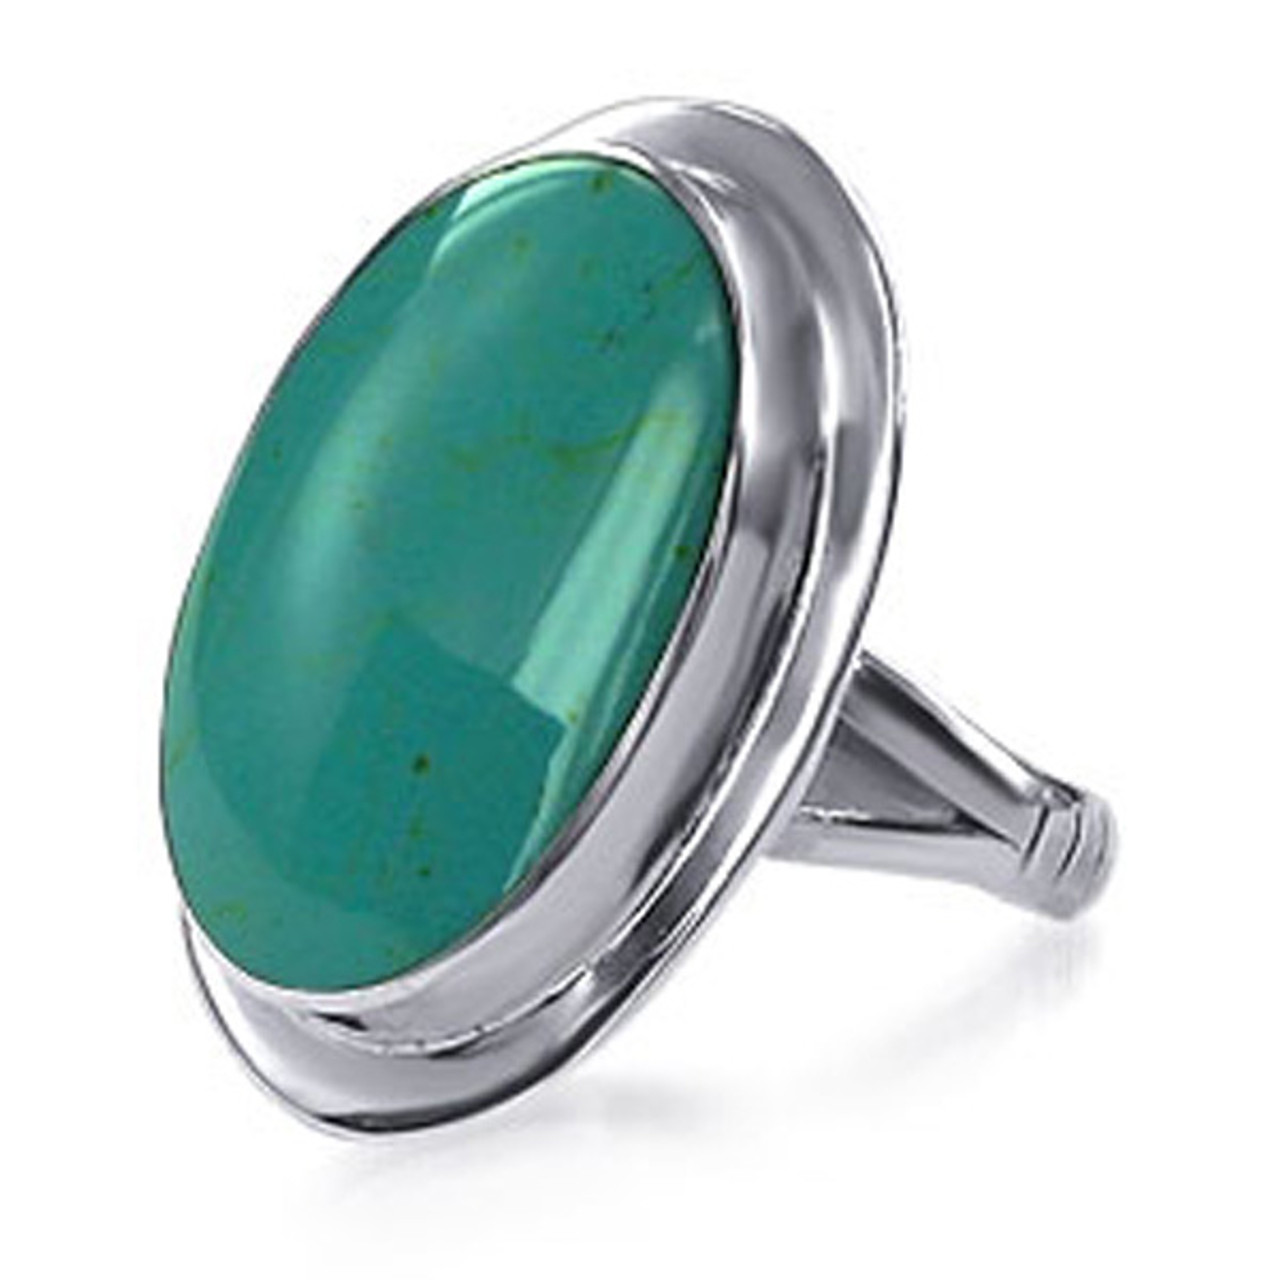 Oval Simulated Turquoise Sterling Silver Solitaire Ring